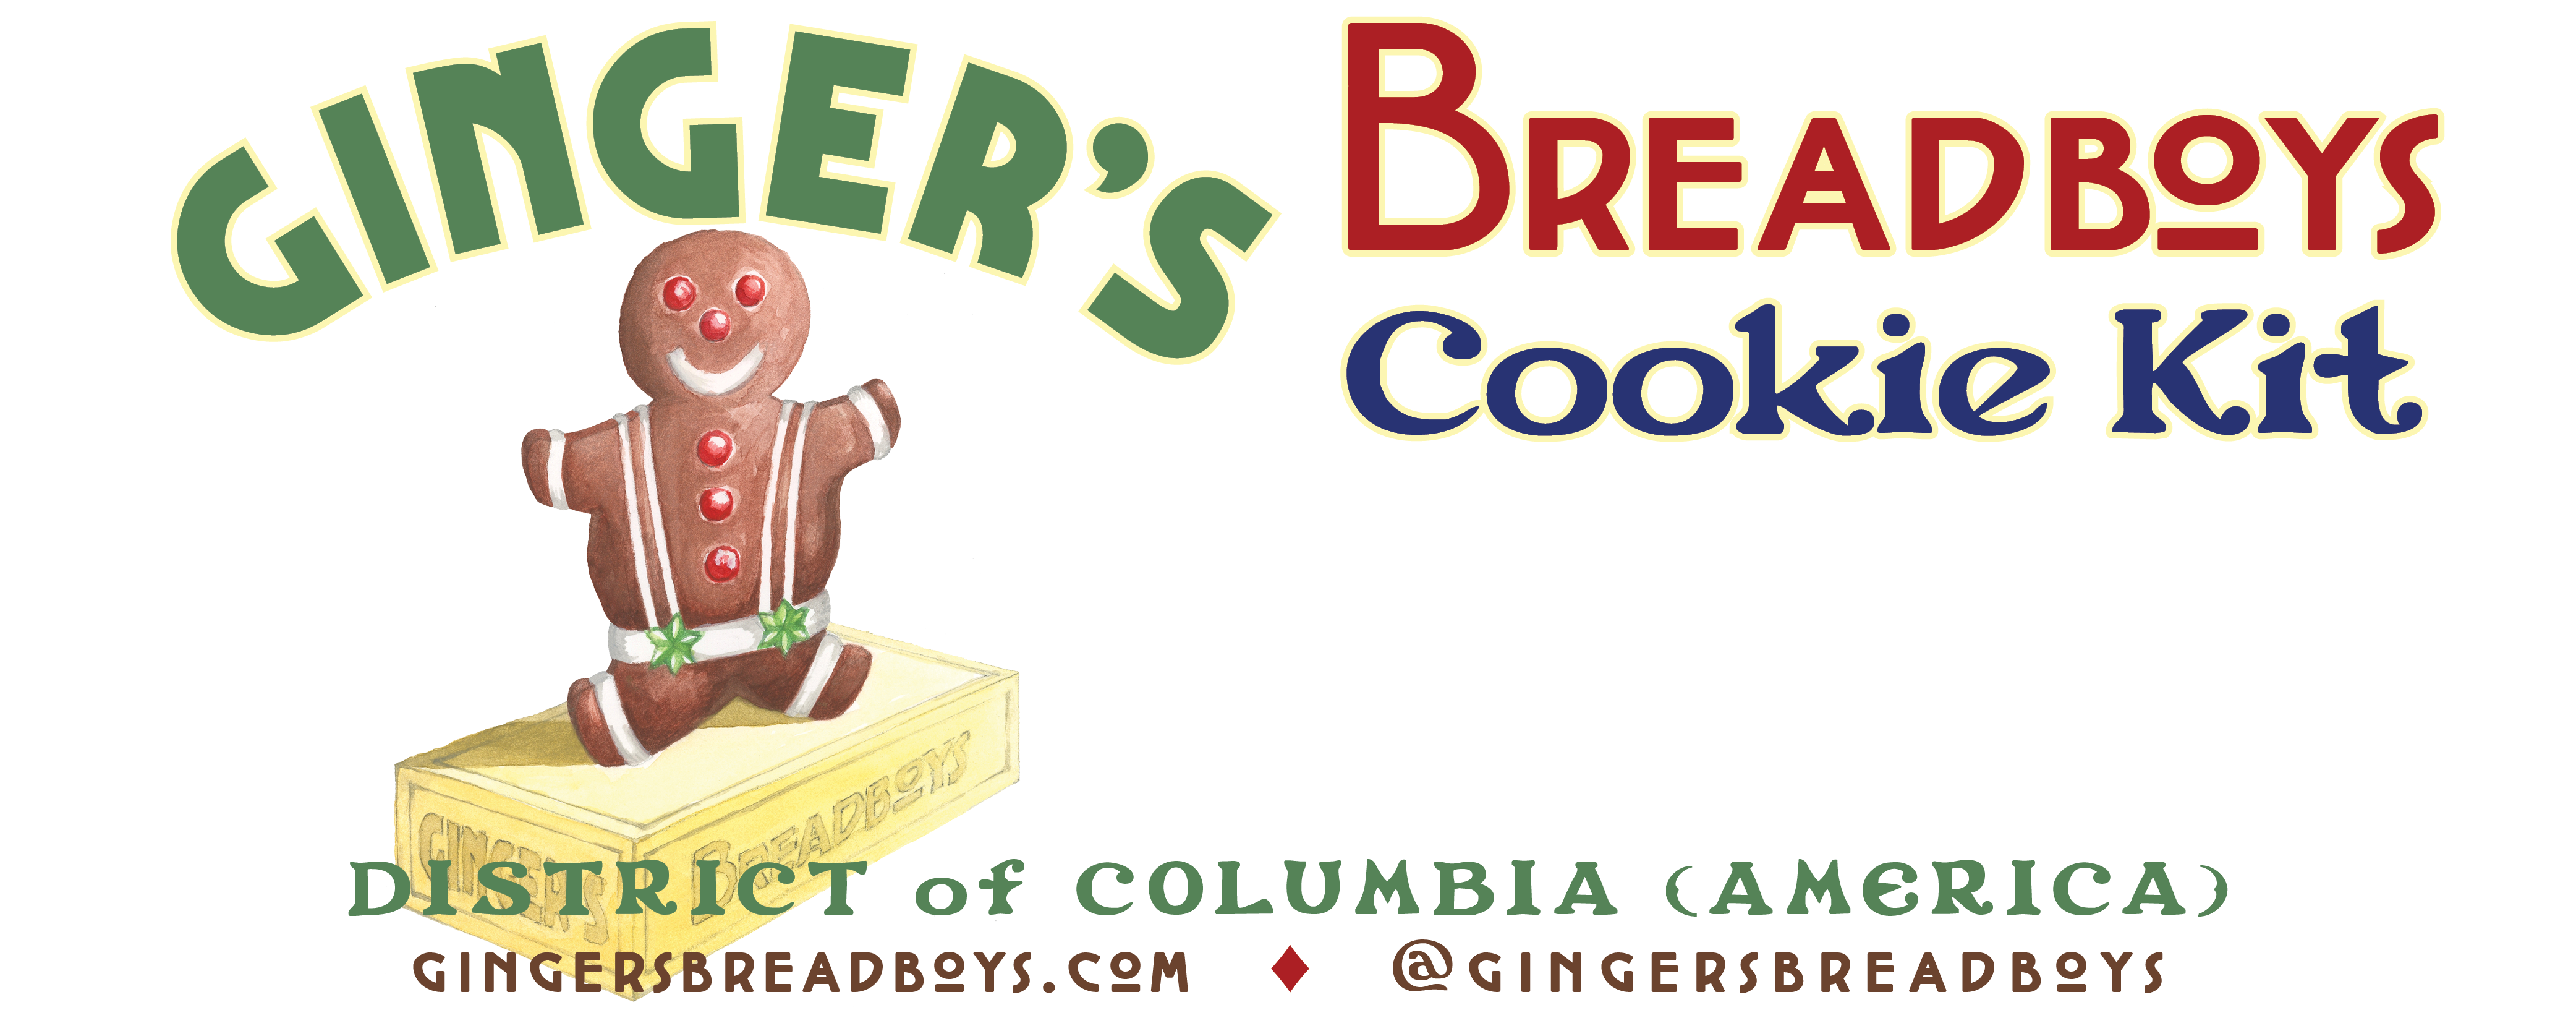 How to make gingerbread cookies with the Ginger's Breadboys cookie kit